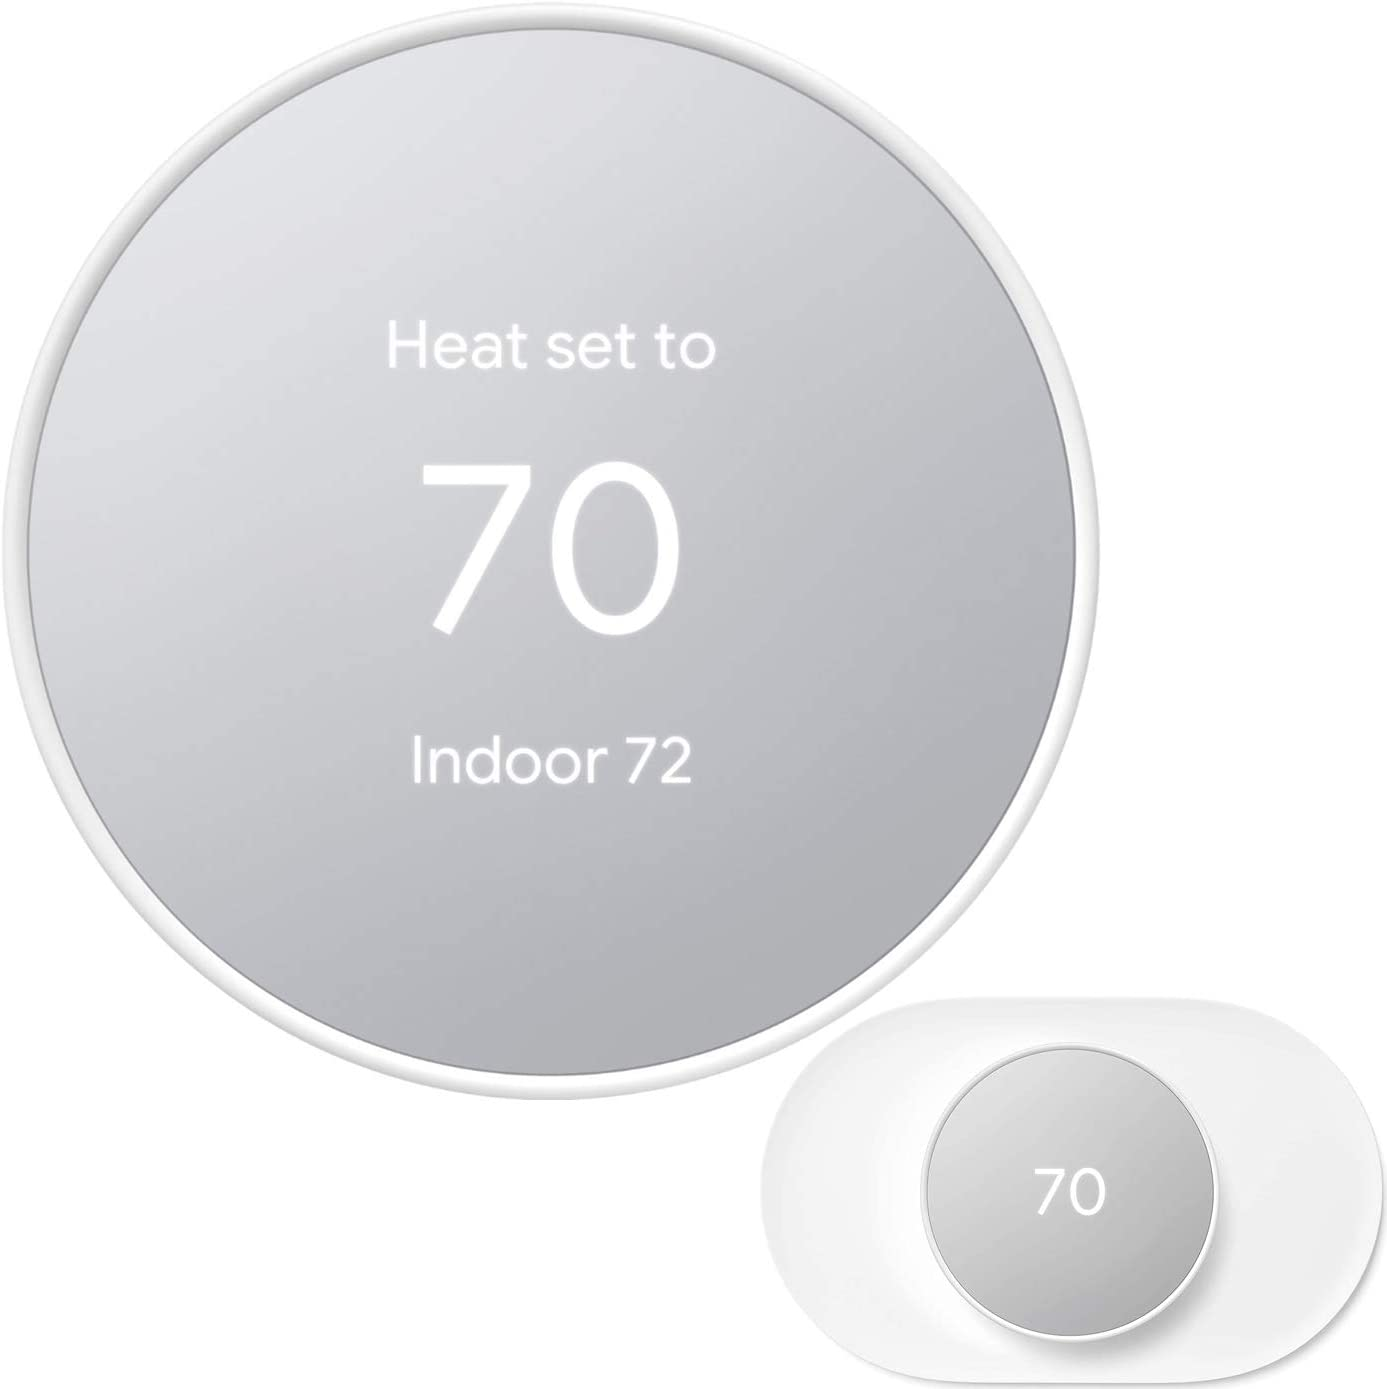 Google Nest Thermostat - Smart Thermostat for Home - Programmable WiFi Thermostat - Snow - GA01334-US Bundle with Matching Google Nest Thermostat Trim Kit Wall Mount Plate GA01837-US